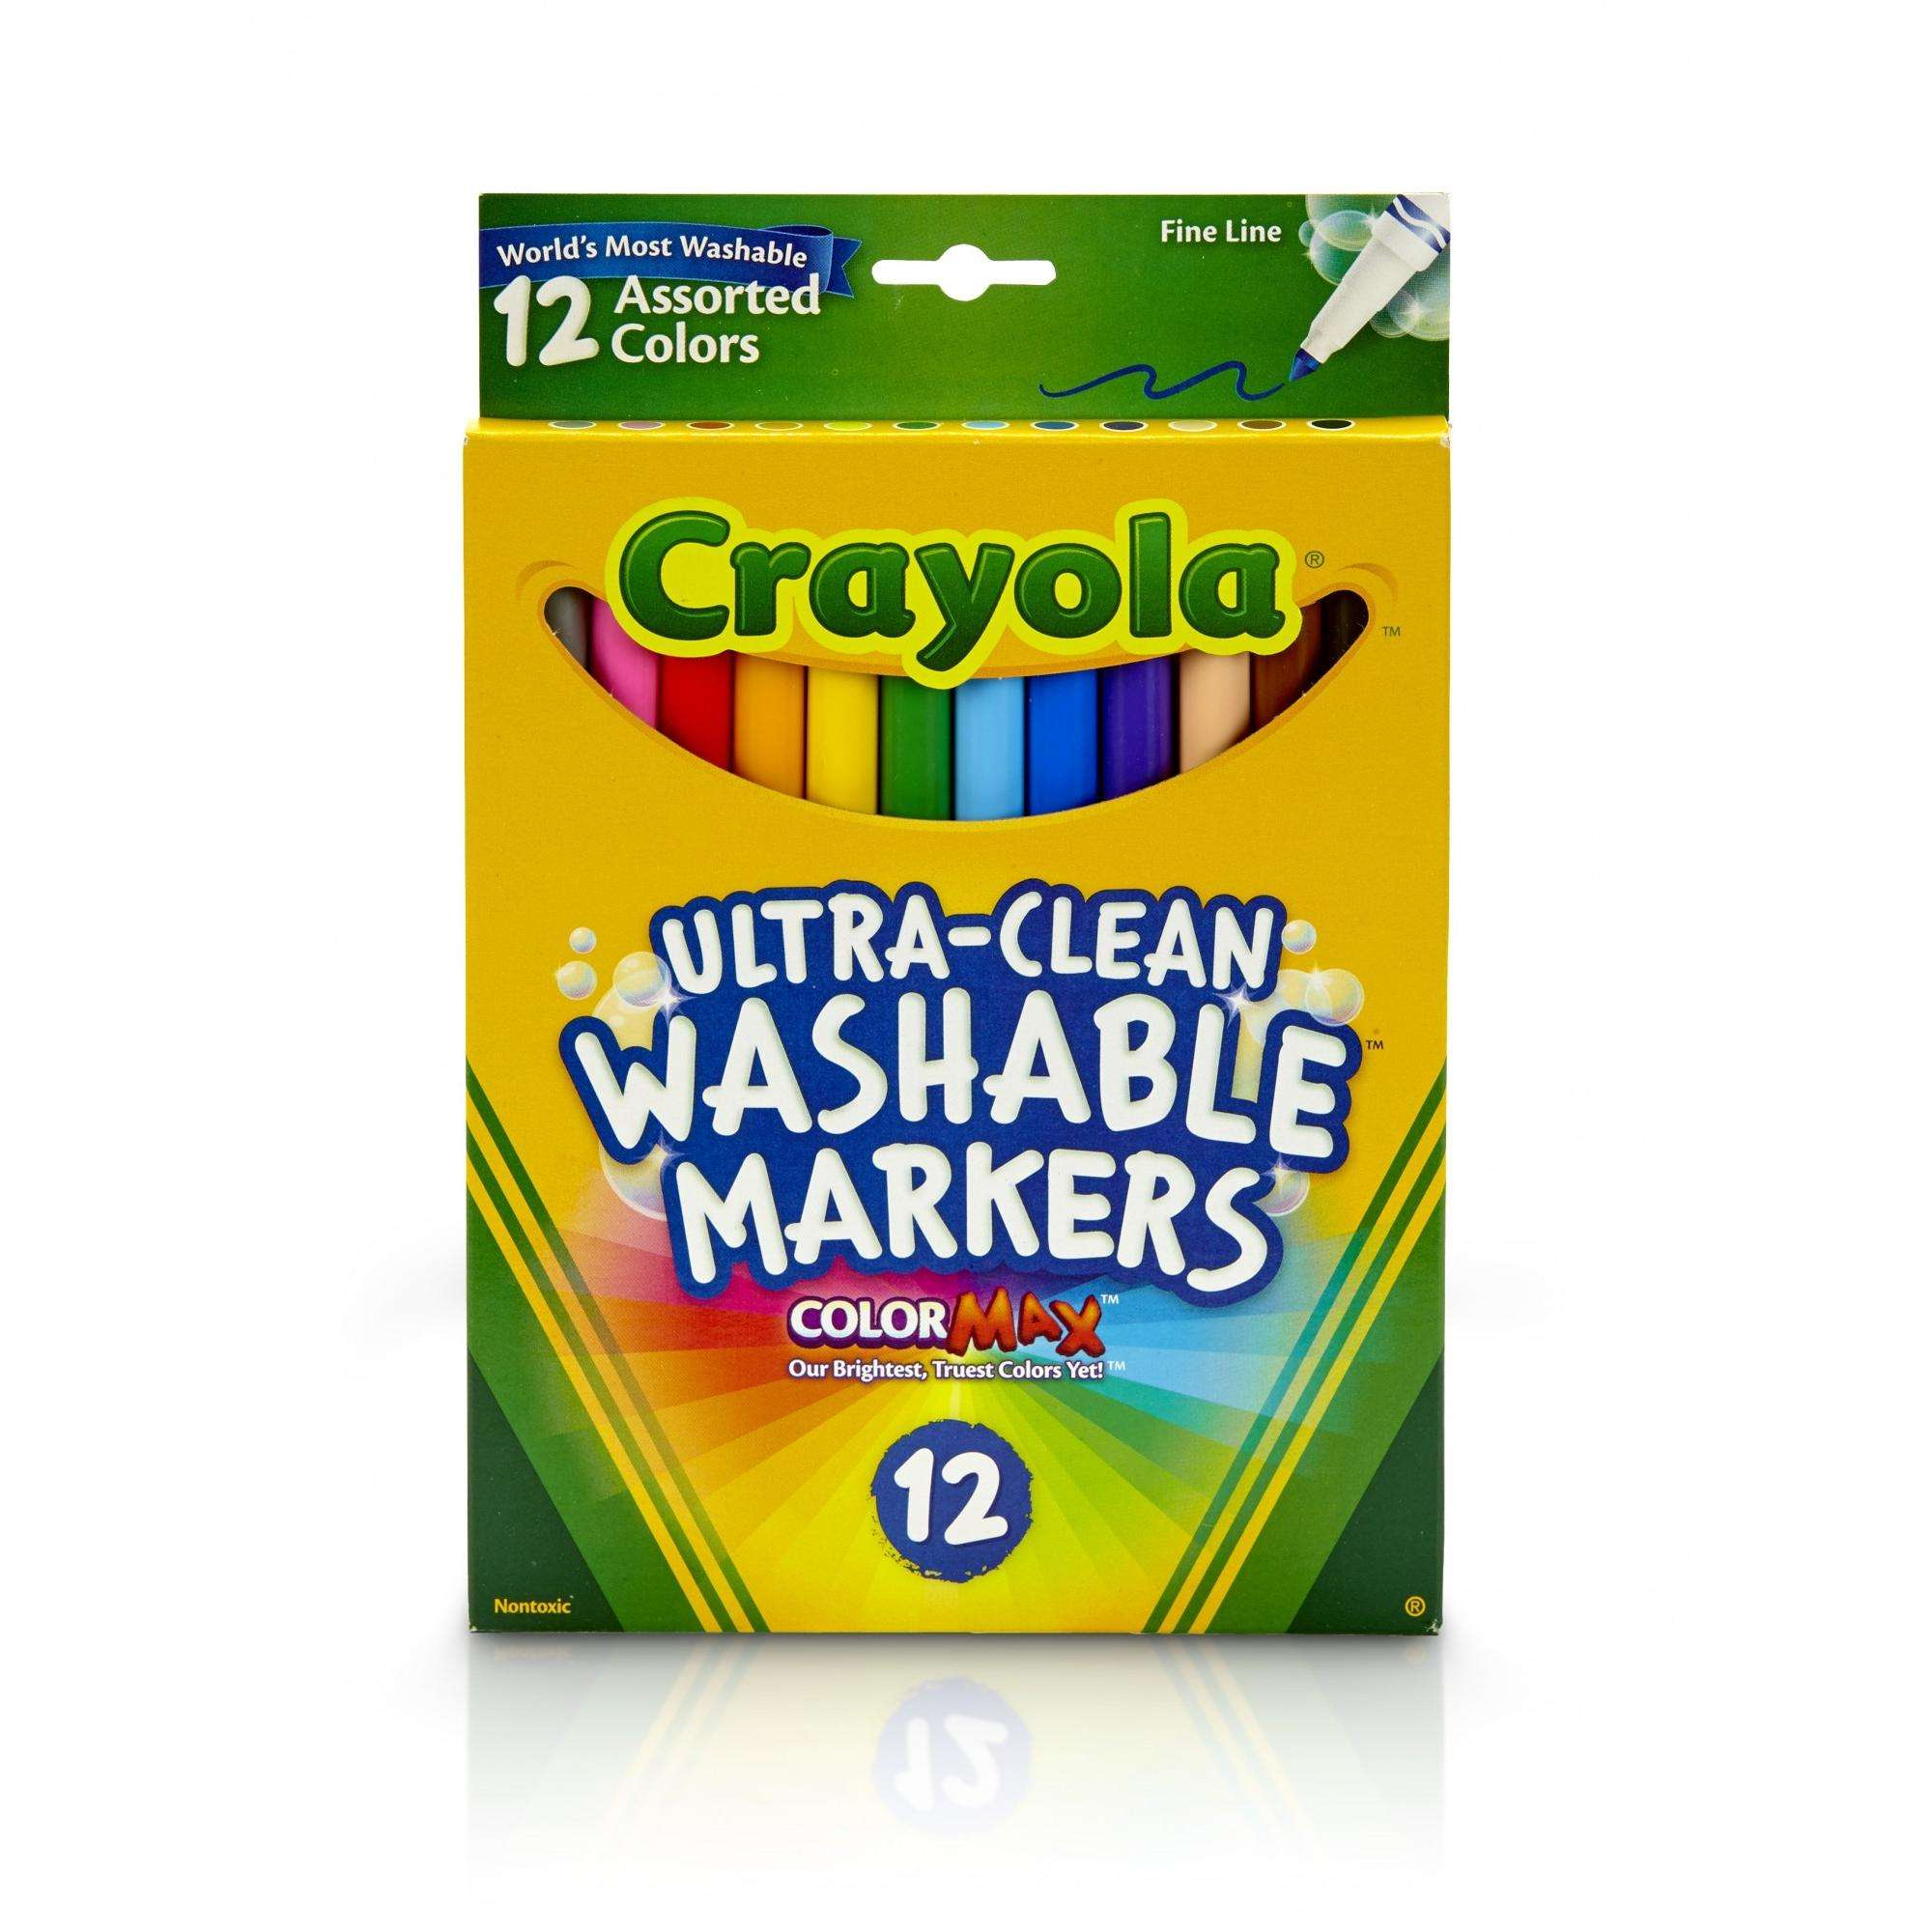 Crayola Ultra Clean Washable Markers, Fine Line, 12 Count by BINNEY & SMITH / CRAYOLA